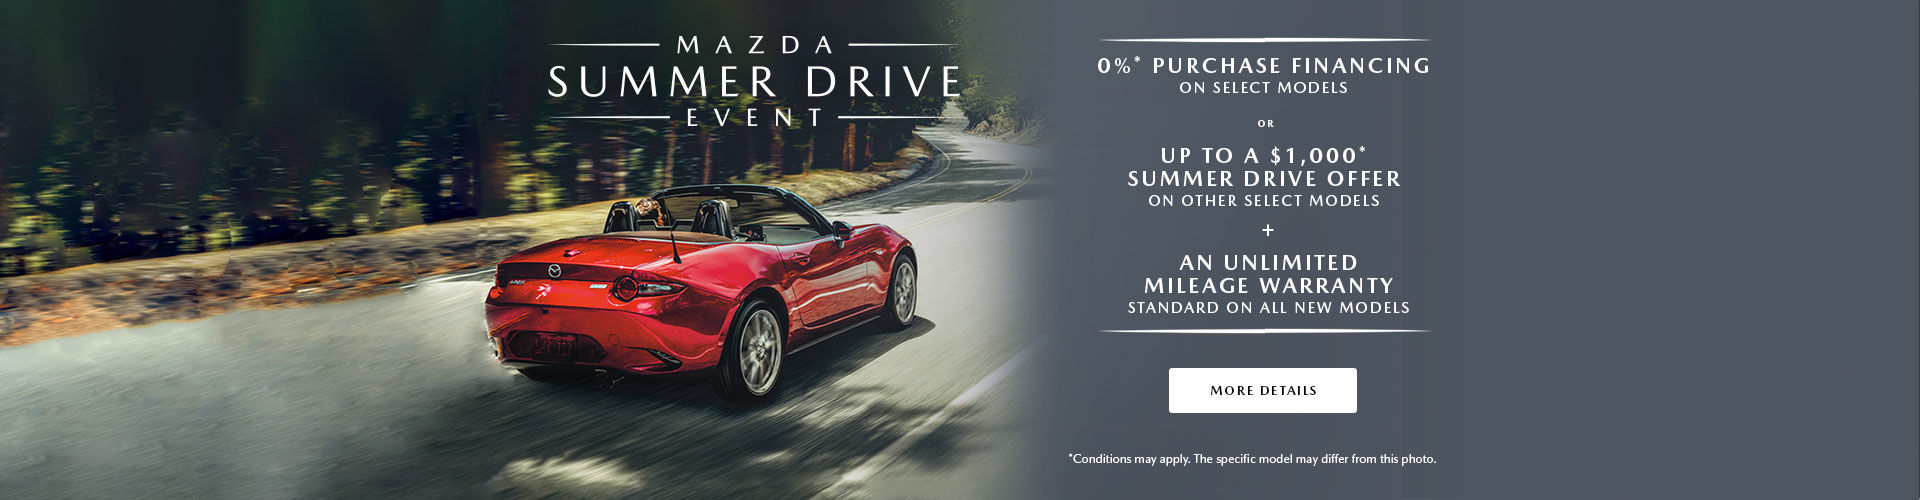 Summer Drive Event